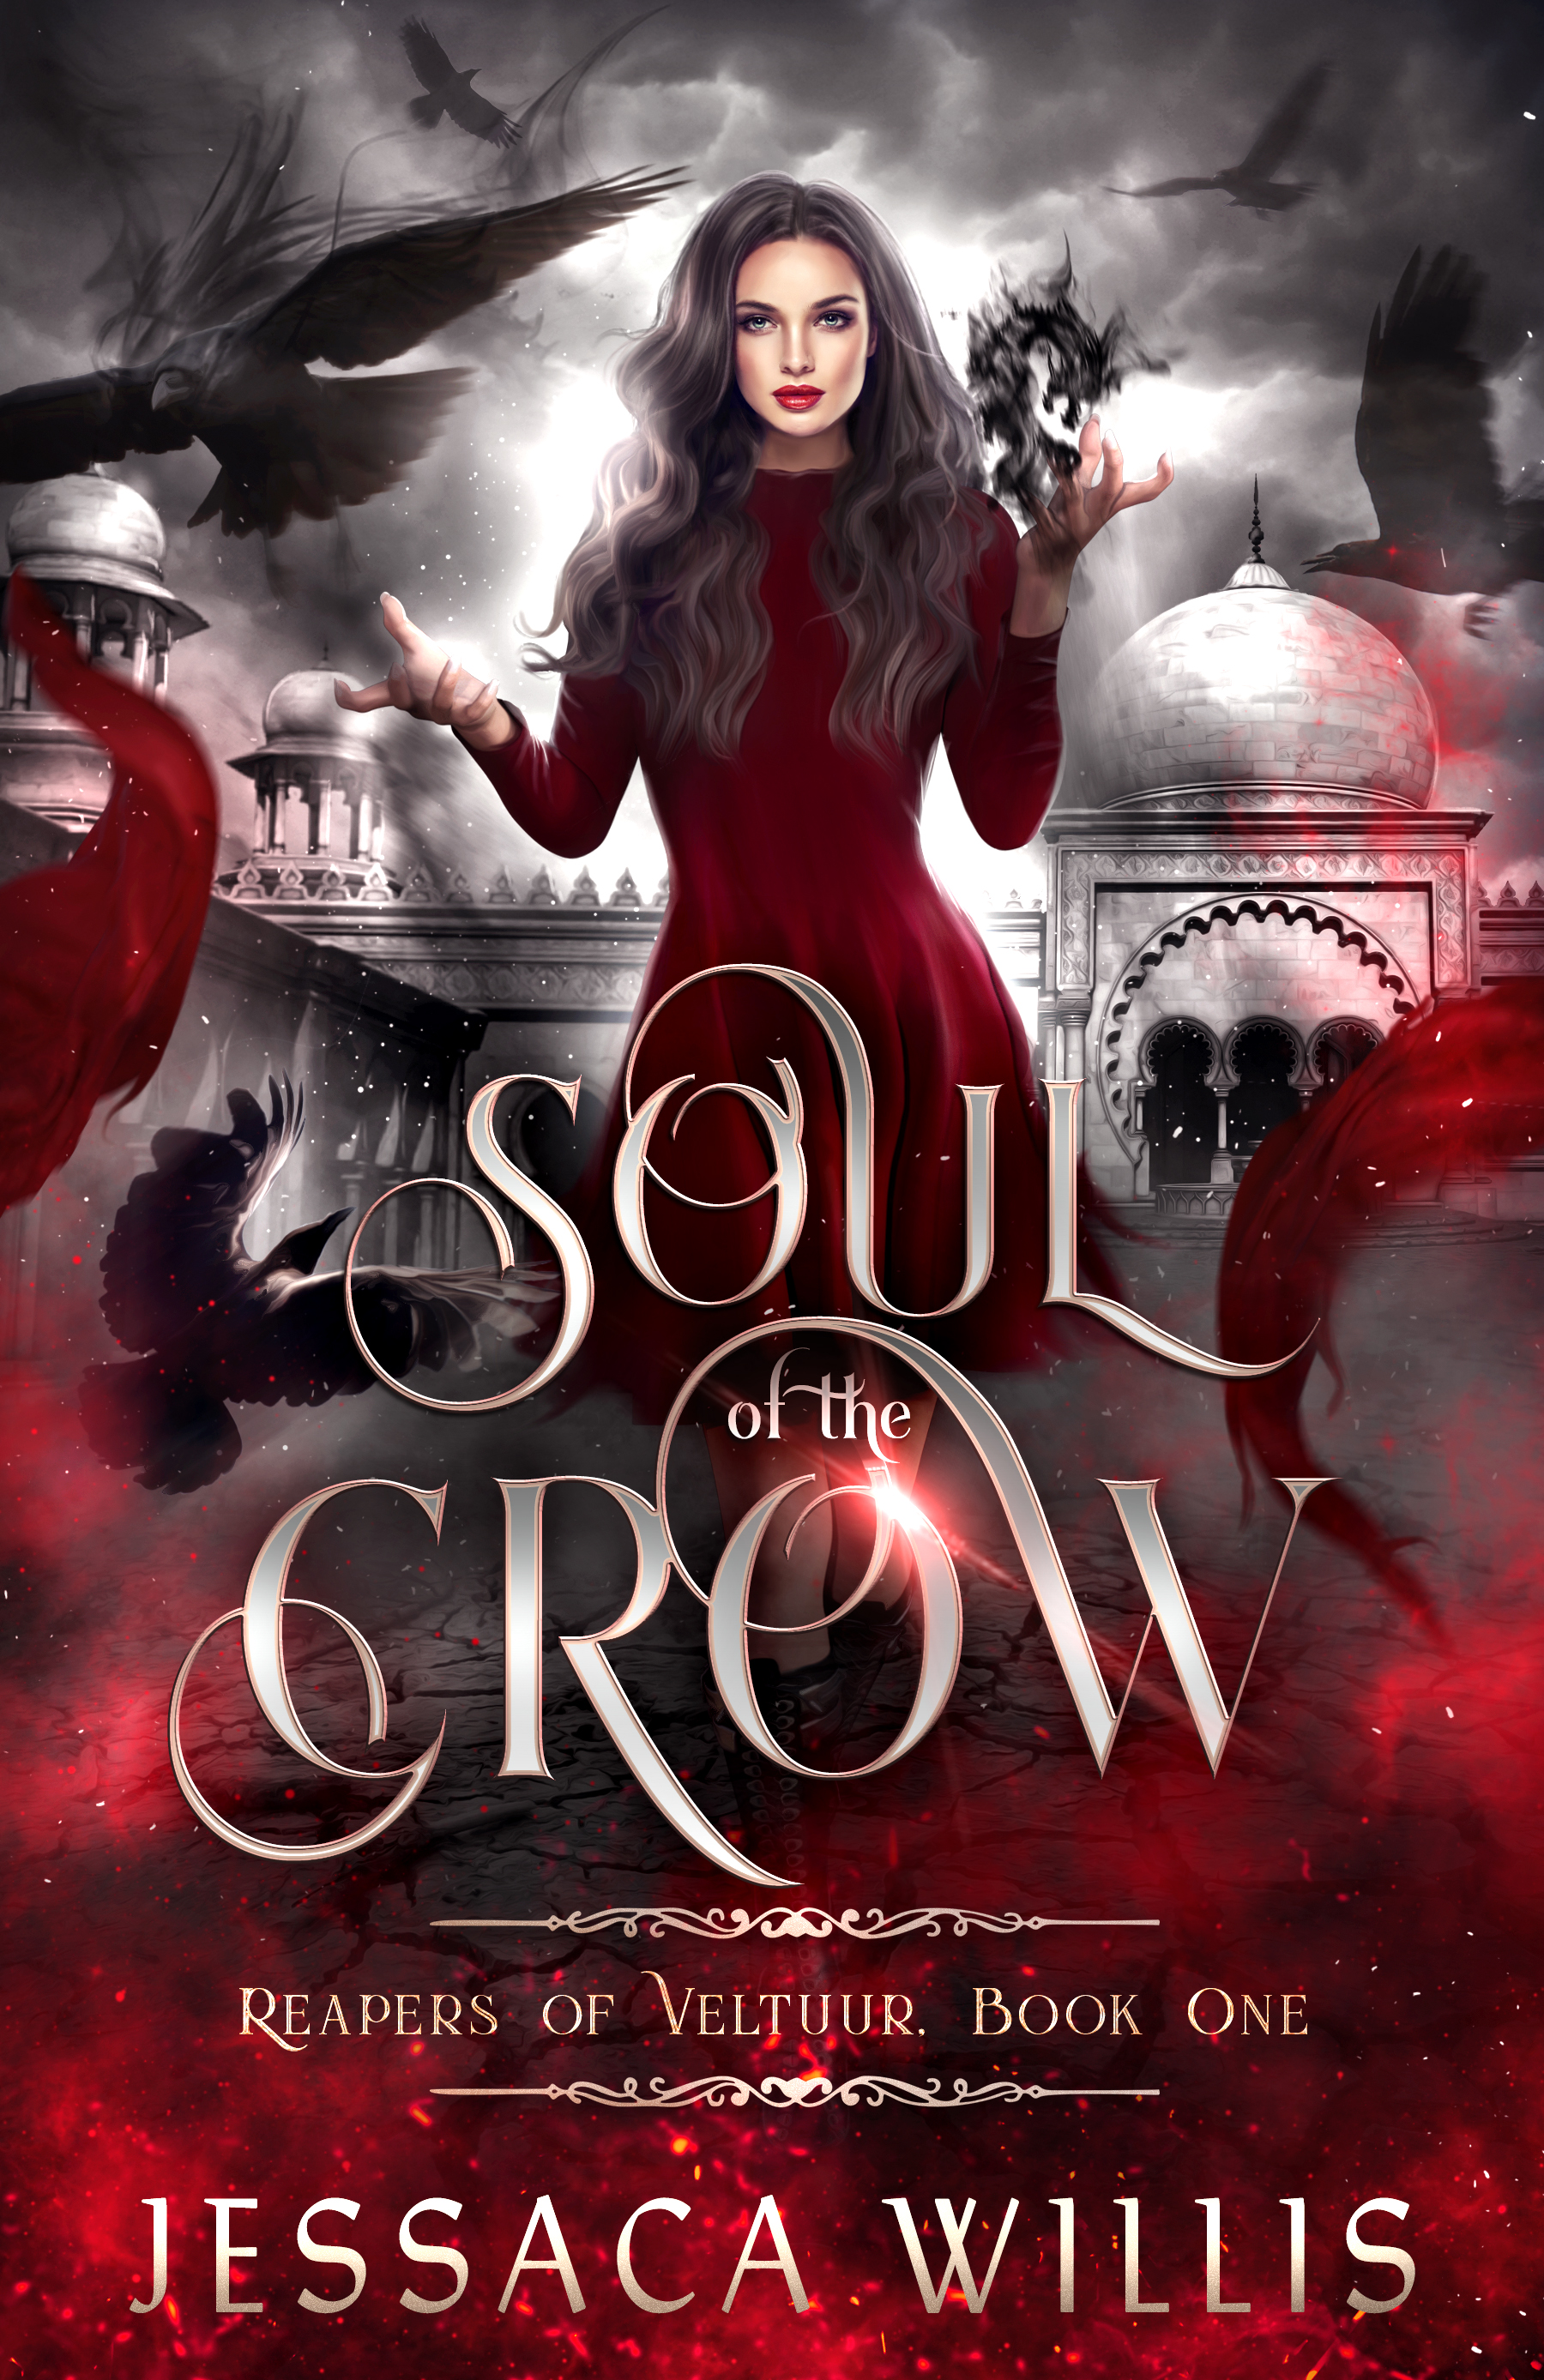 Soul of the Crow